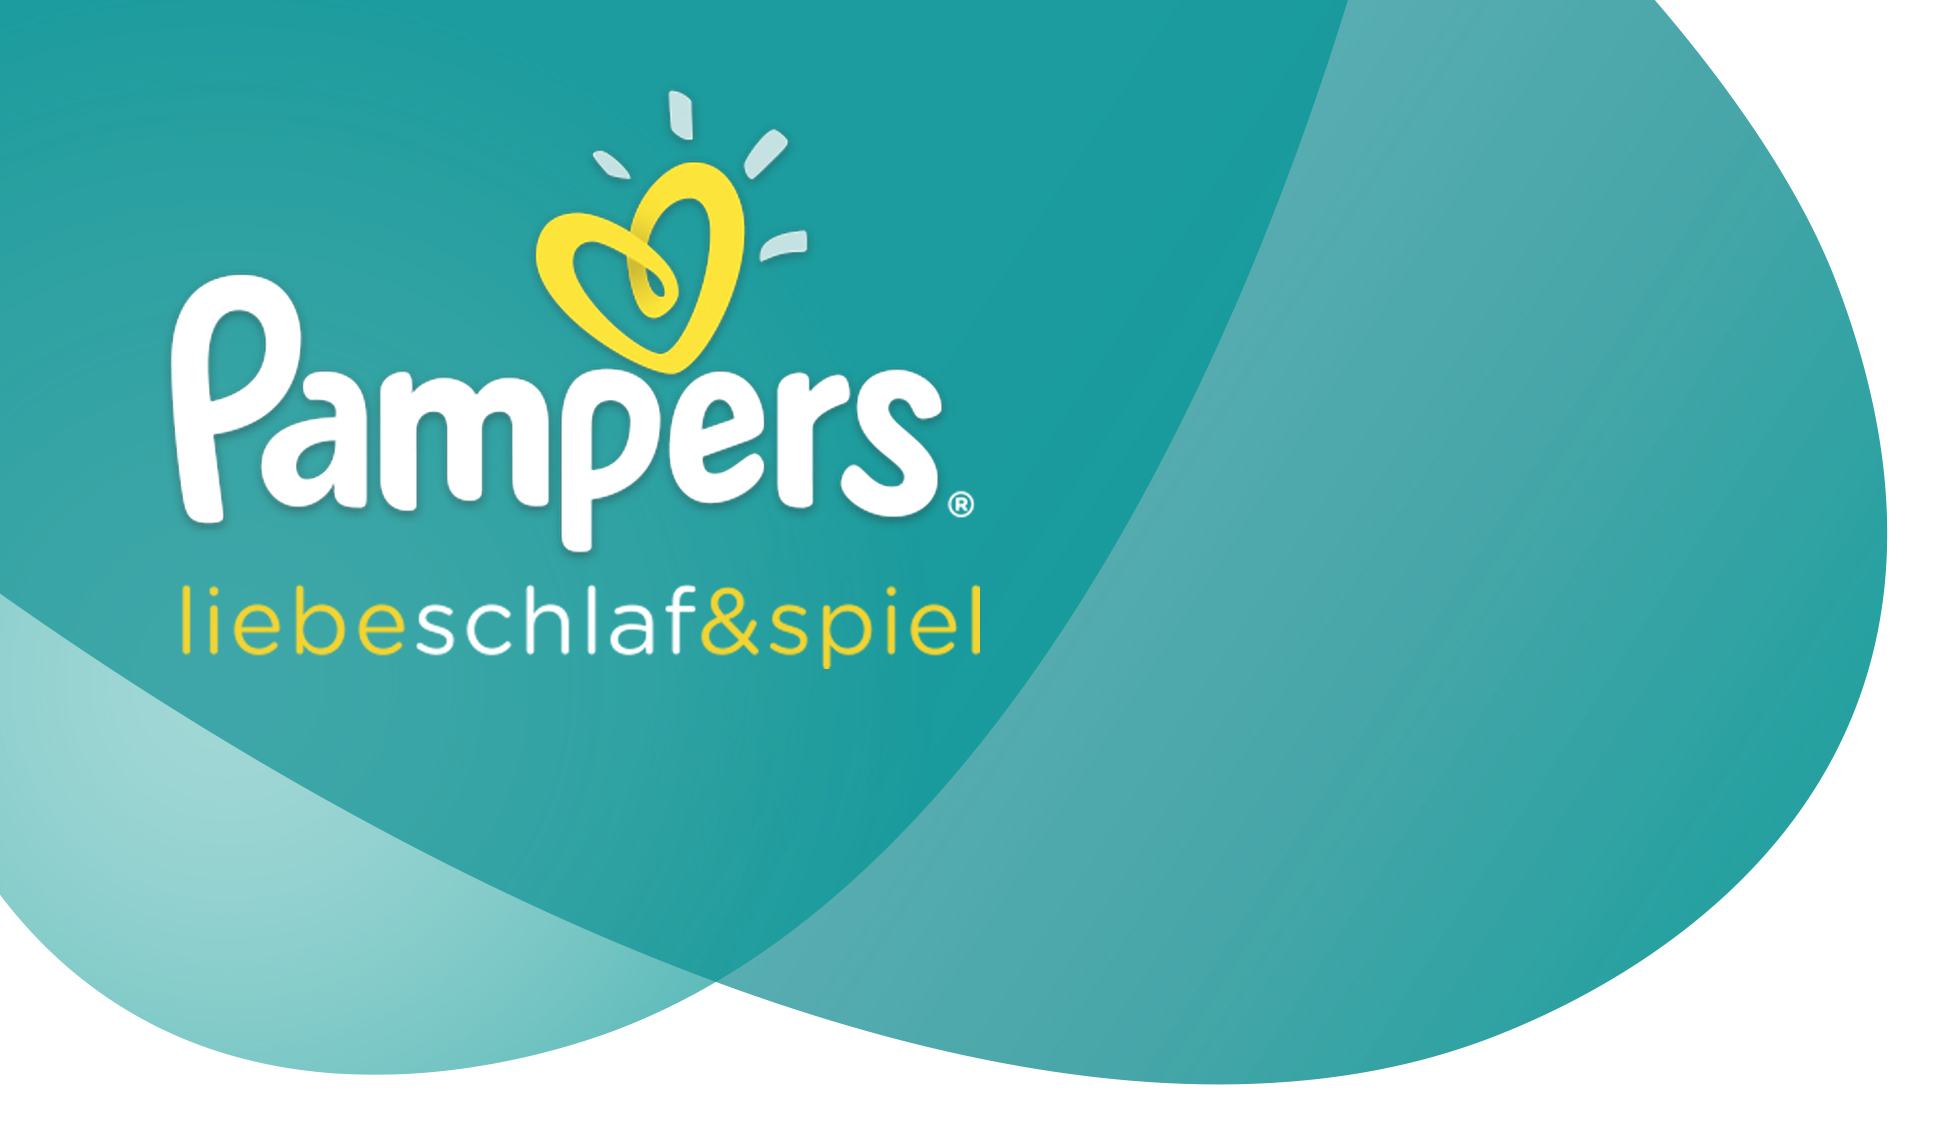 Pampers_Logo_2014_Claim_Background.jpg